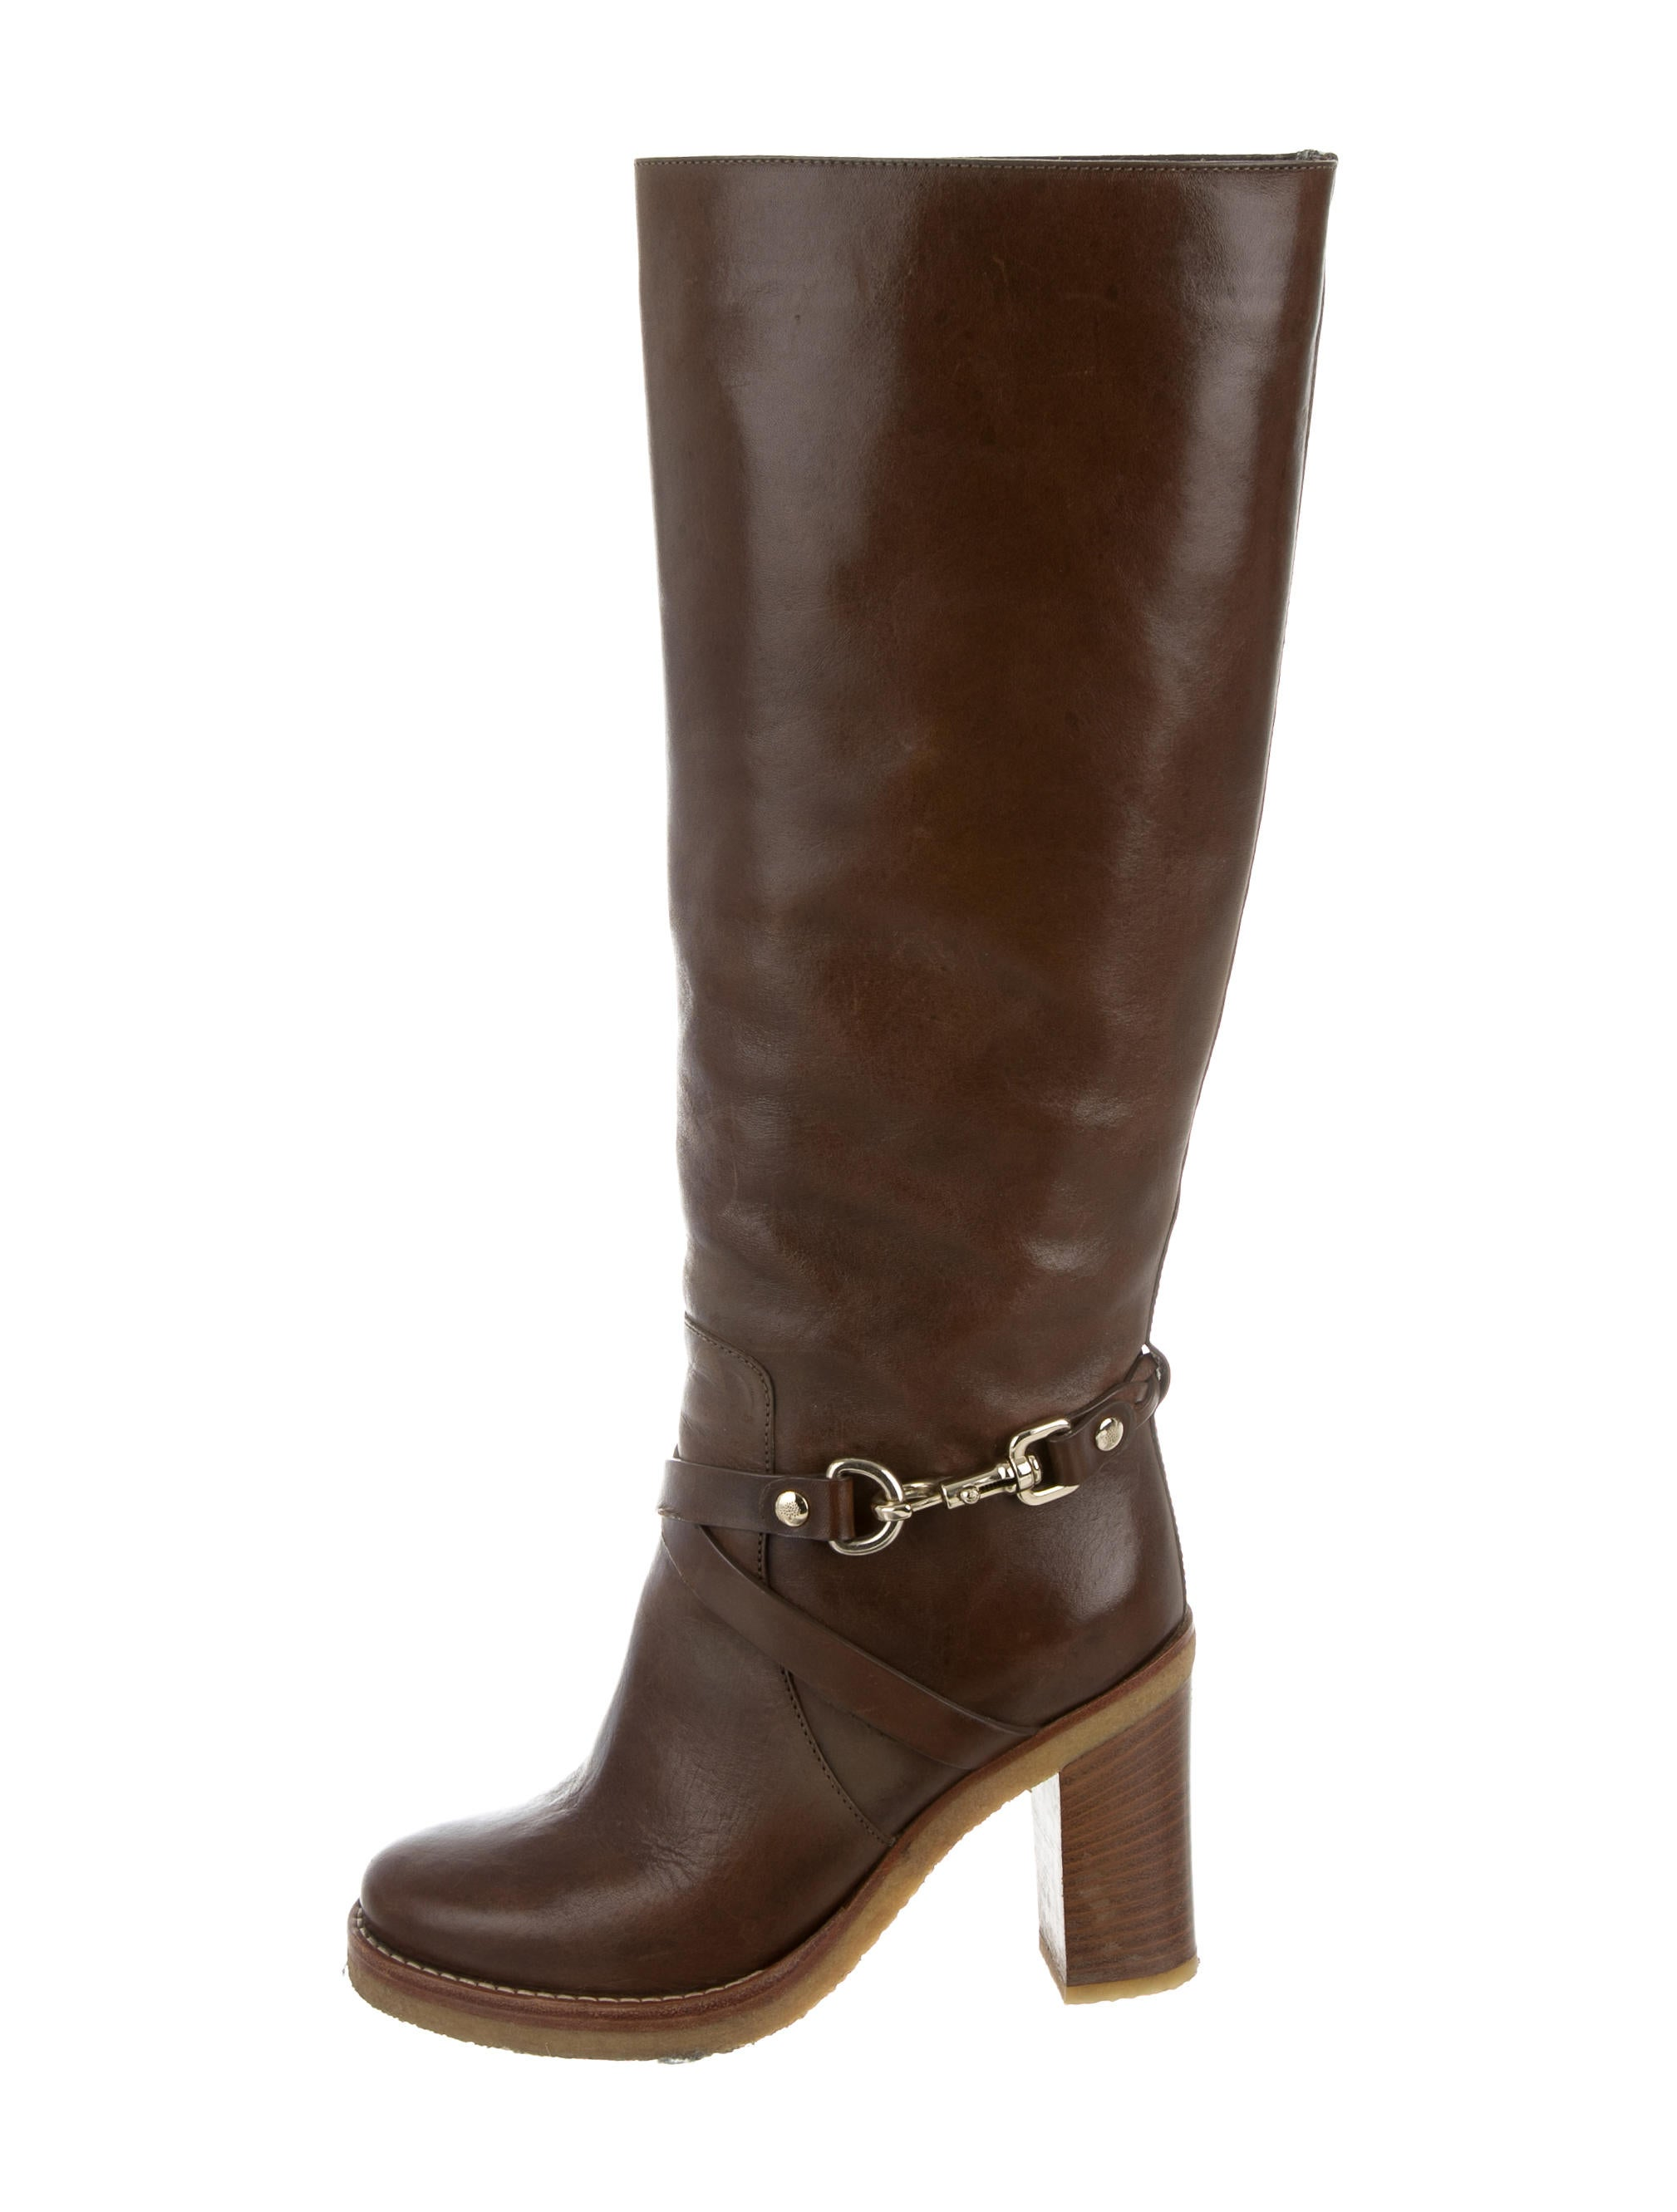 Dsquared² Suede Knee-High Boots w/ Tags popular high quality sale online cheap sale shop offer ANXwIhv